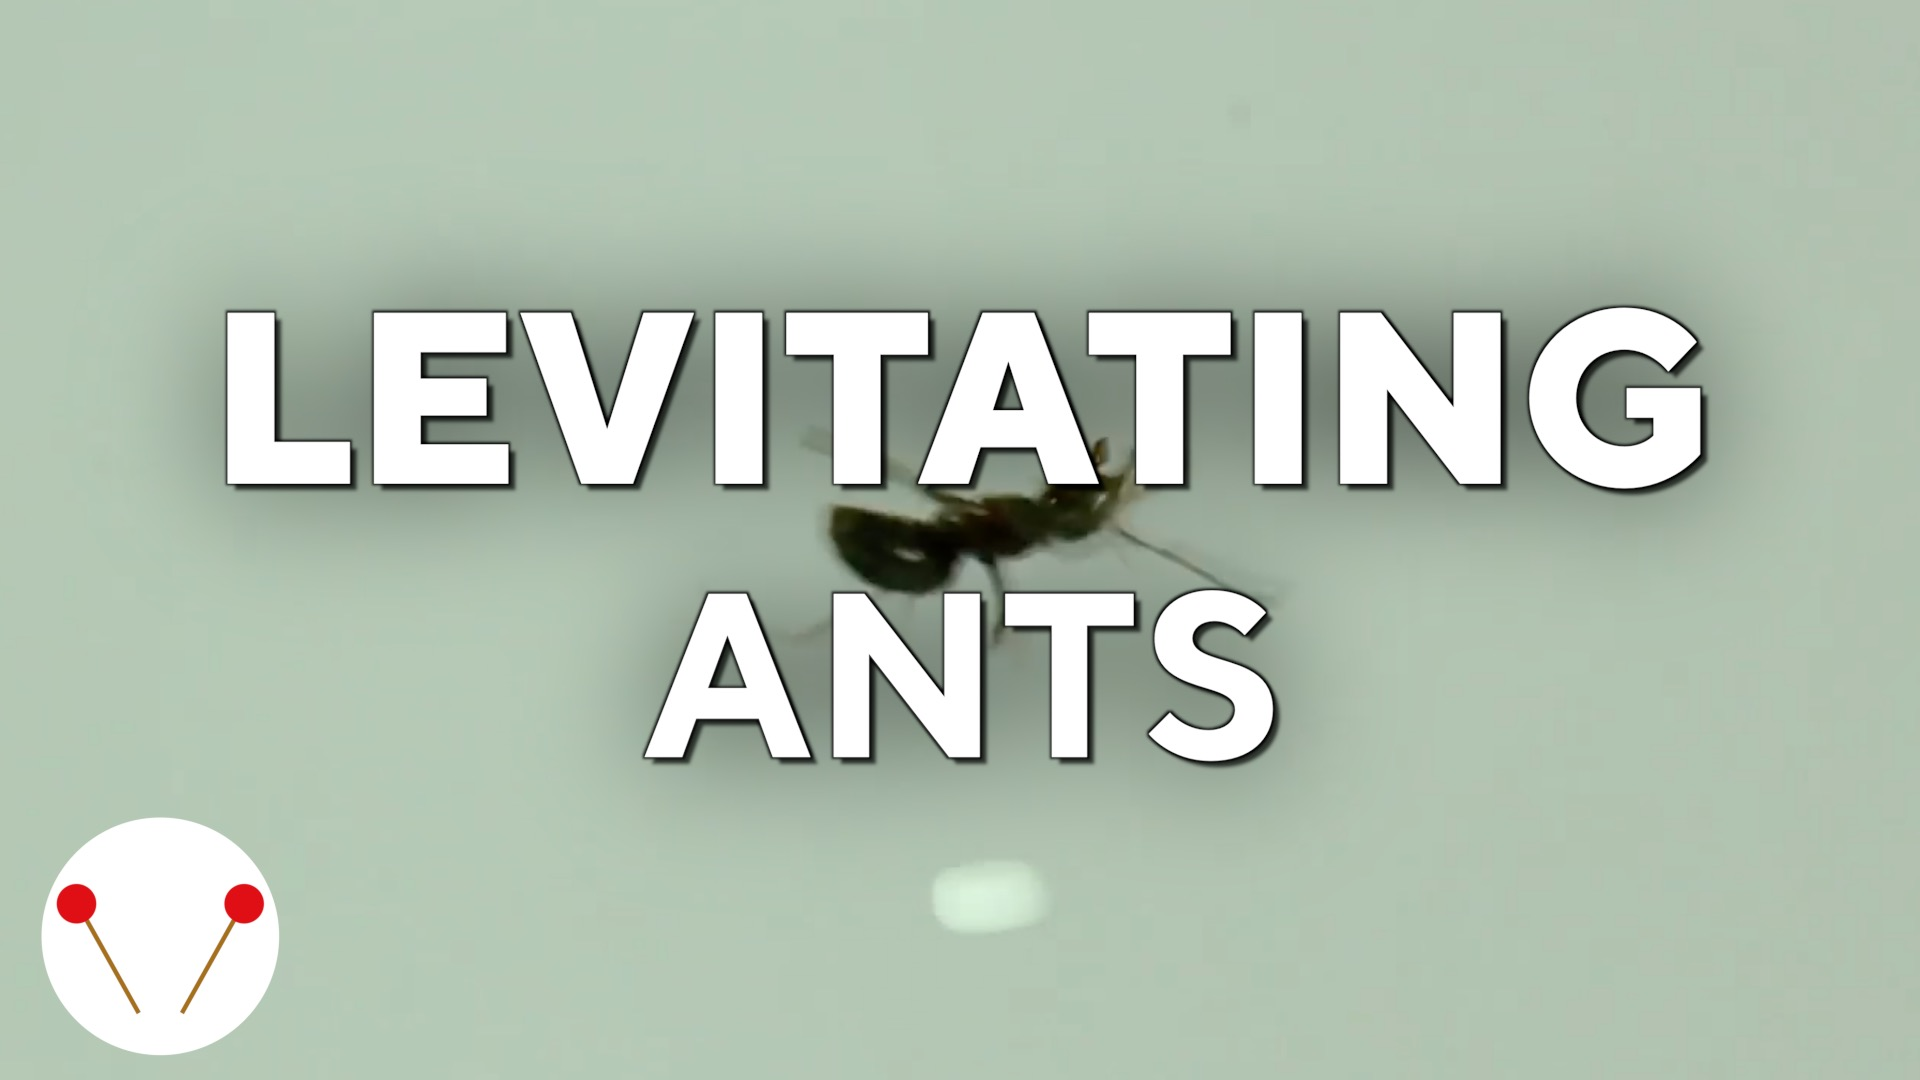 Scientists can levitate ants using acoustic tractor beam